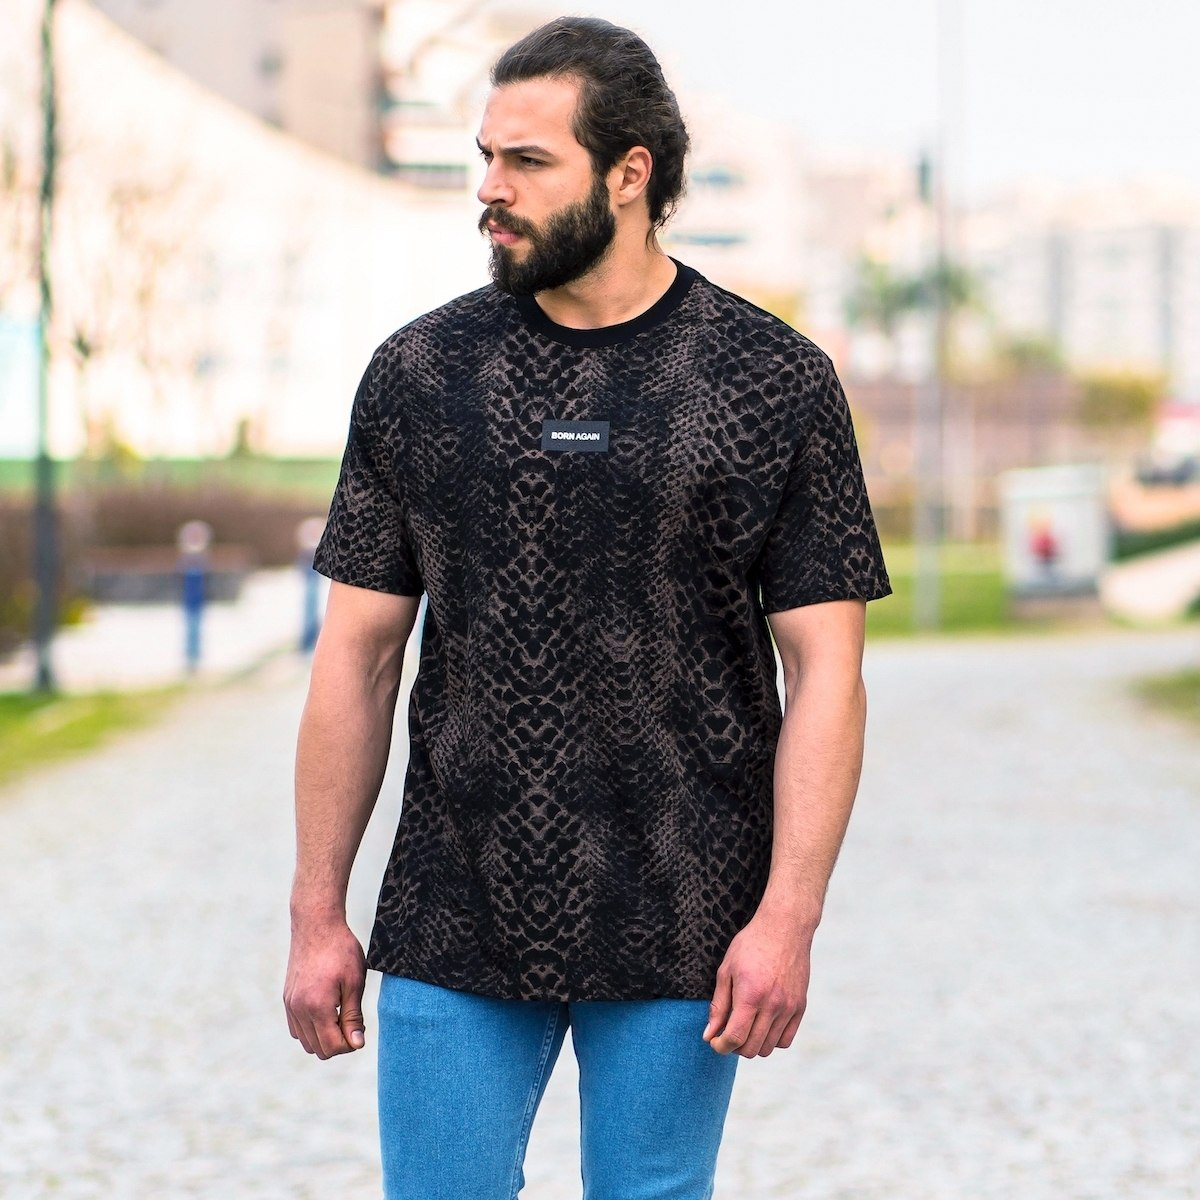 """Born Again"" Panther Patterned Oversize T-Shirt"